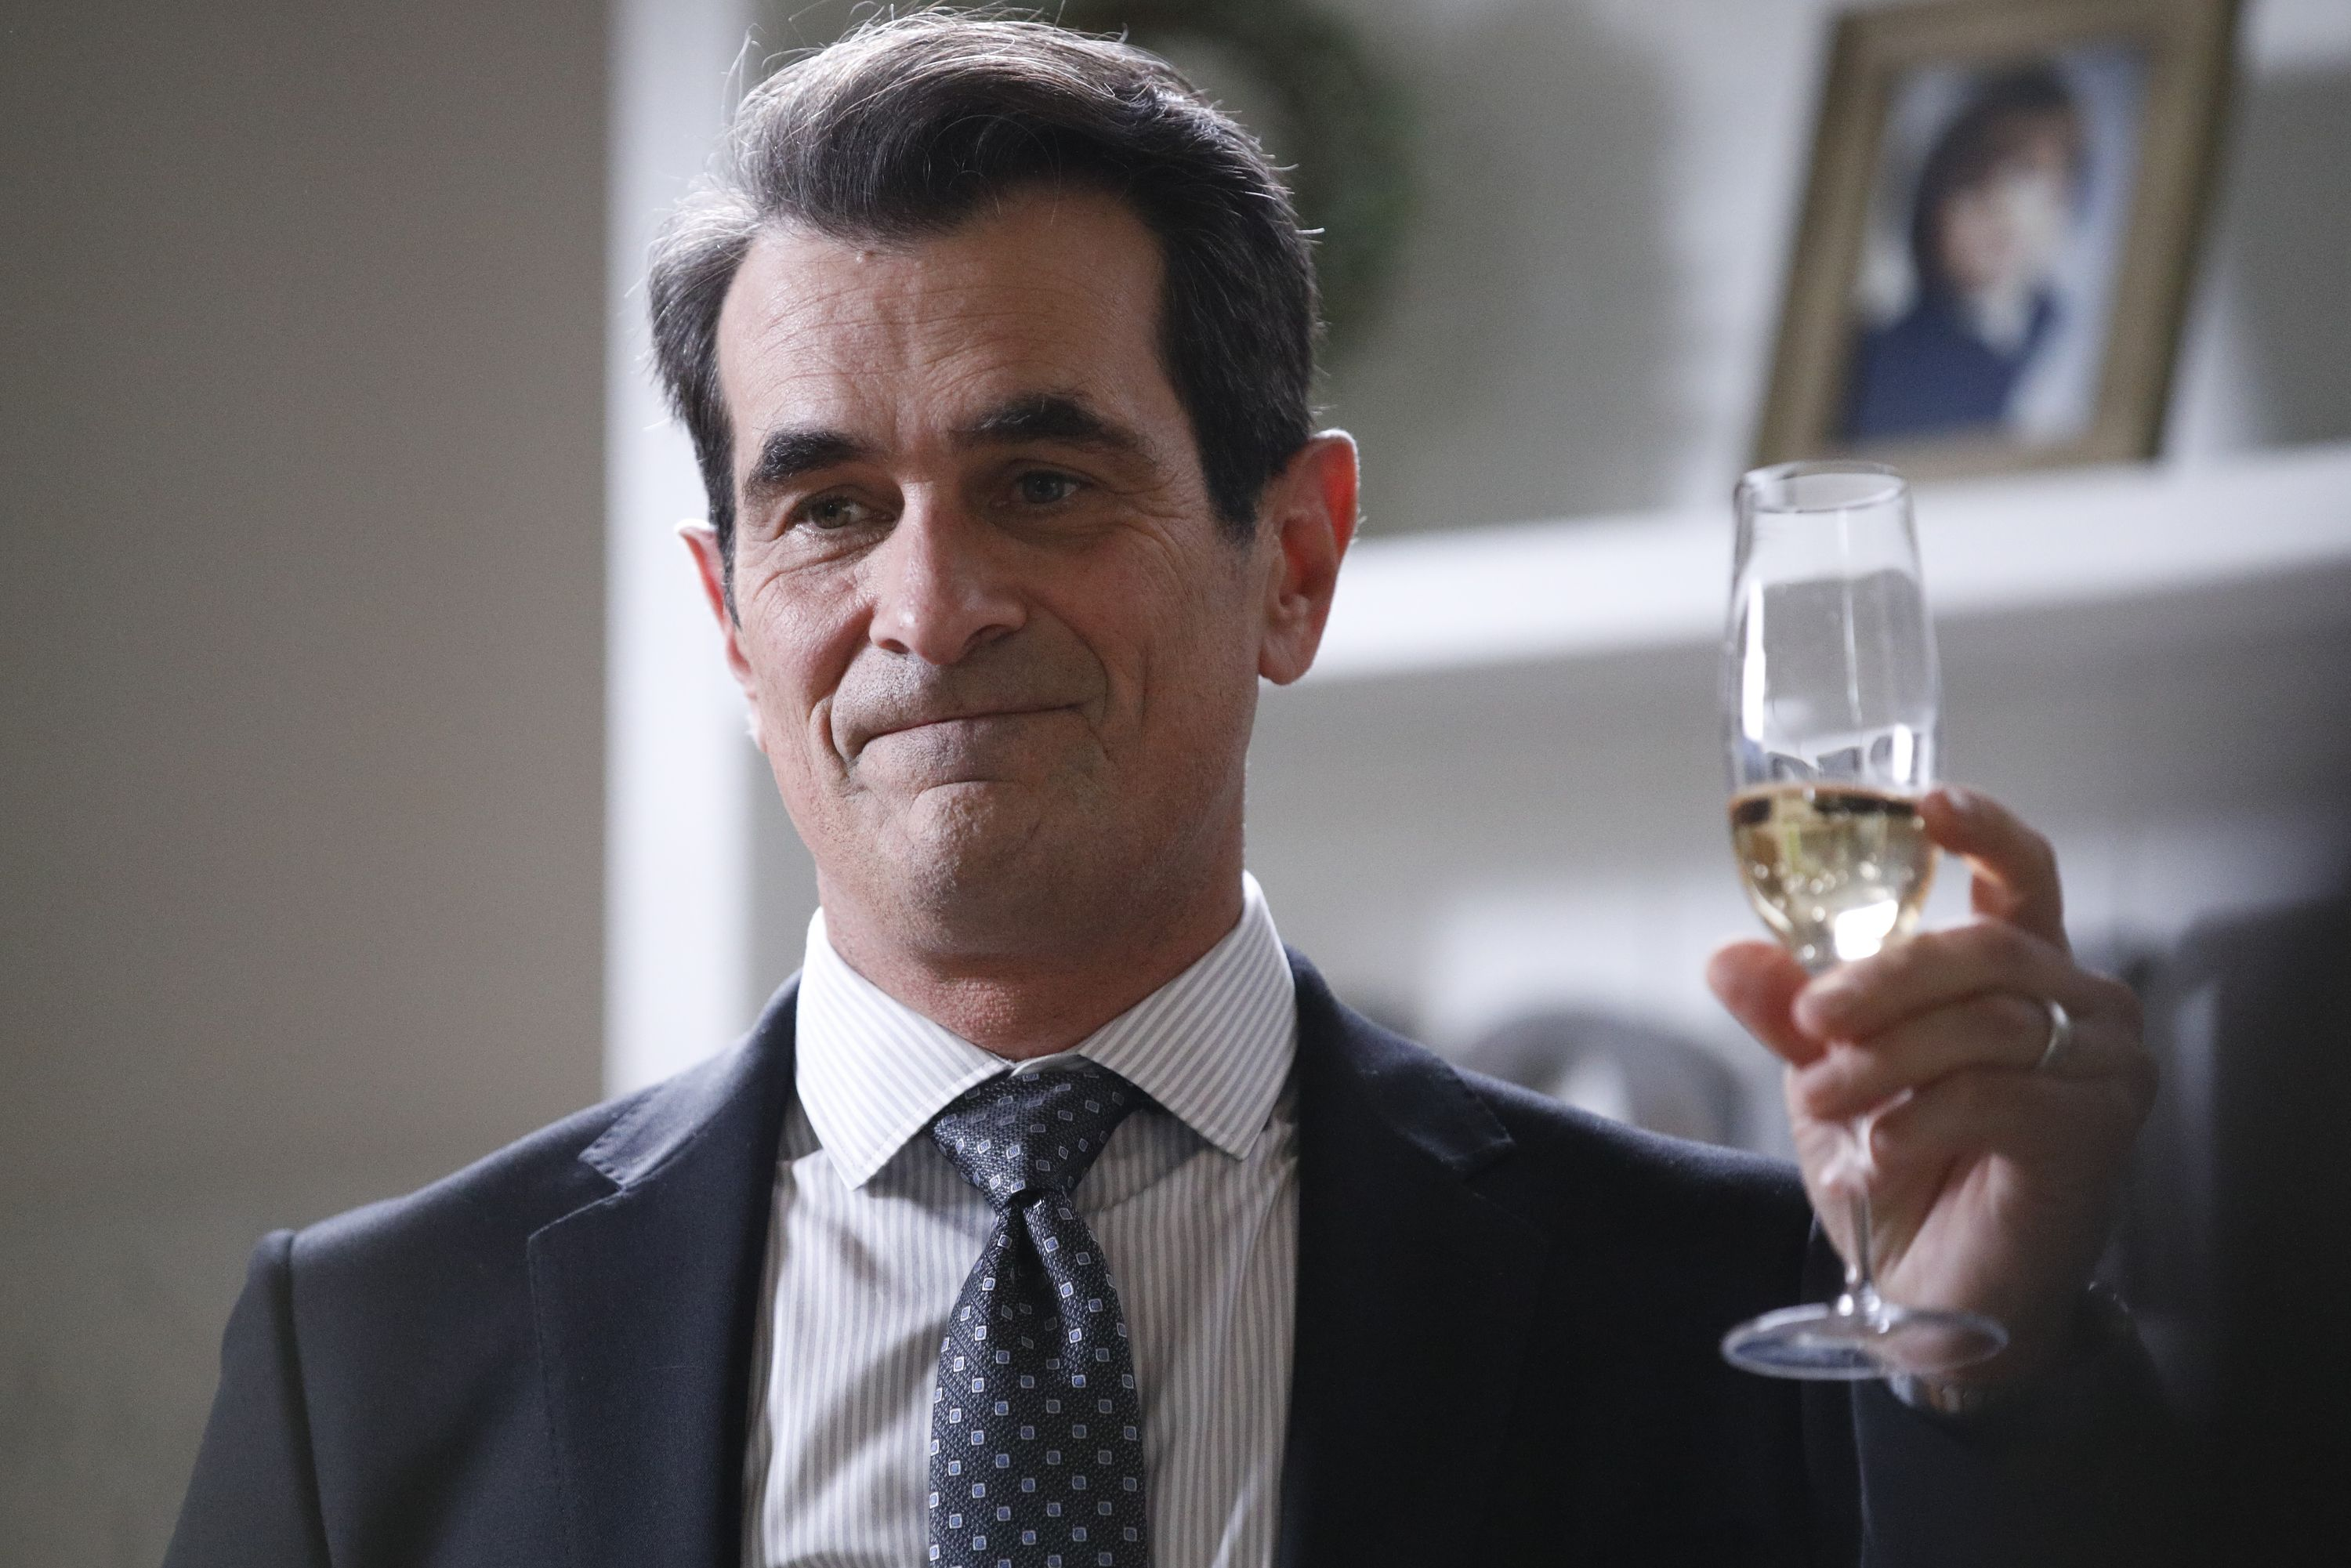 After 11 Years, 'Modern Family' Ends: See Fans Emotional Reactions